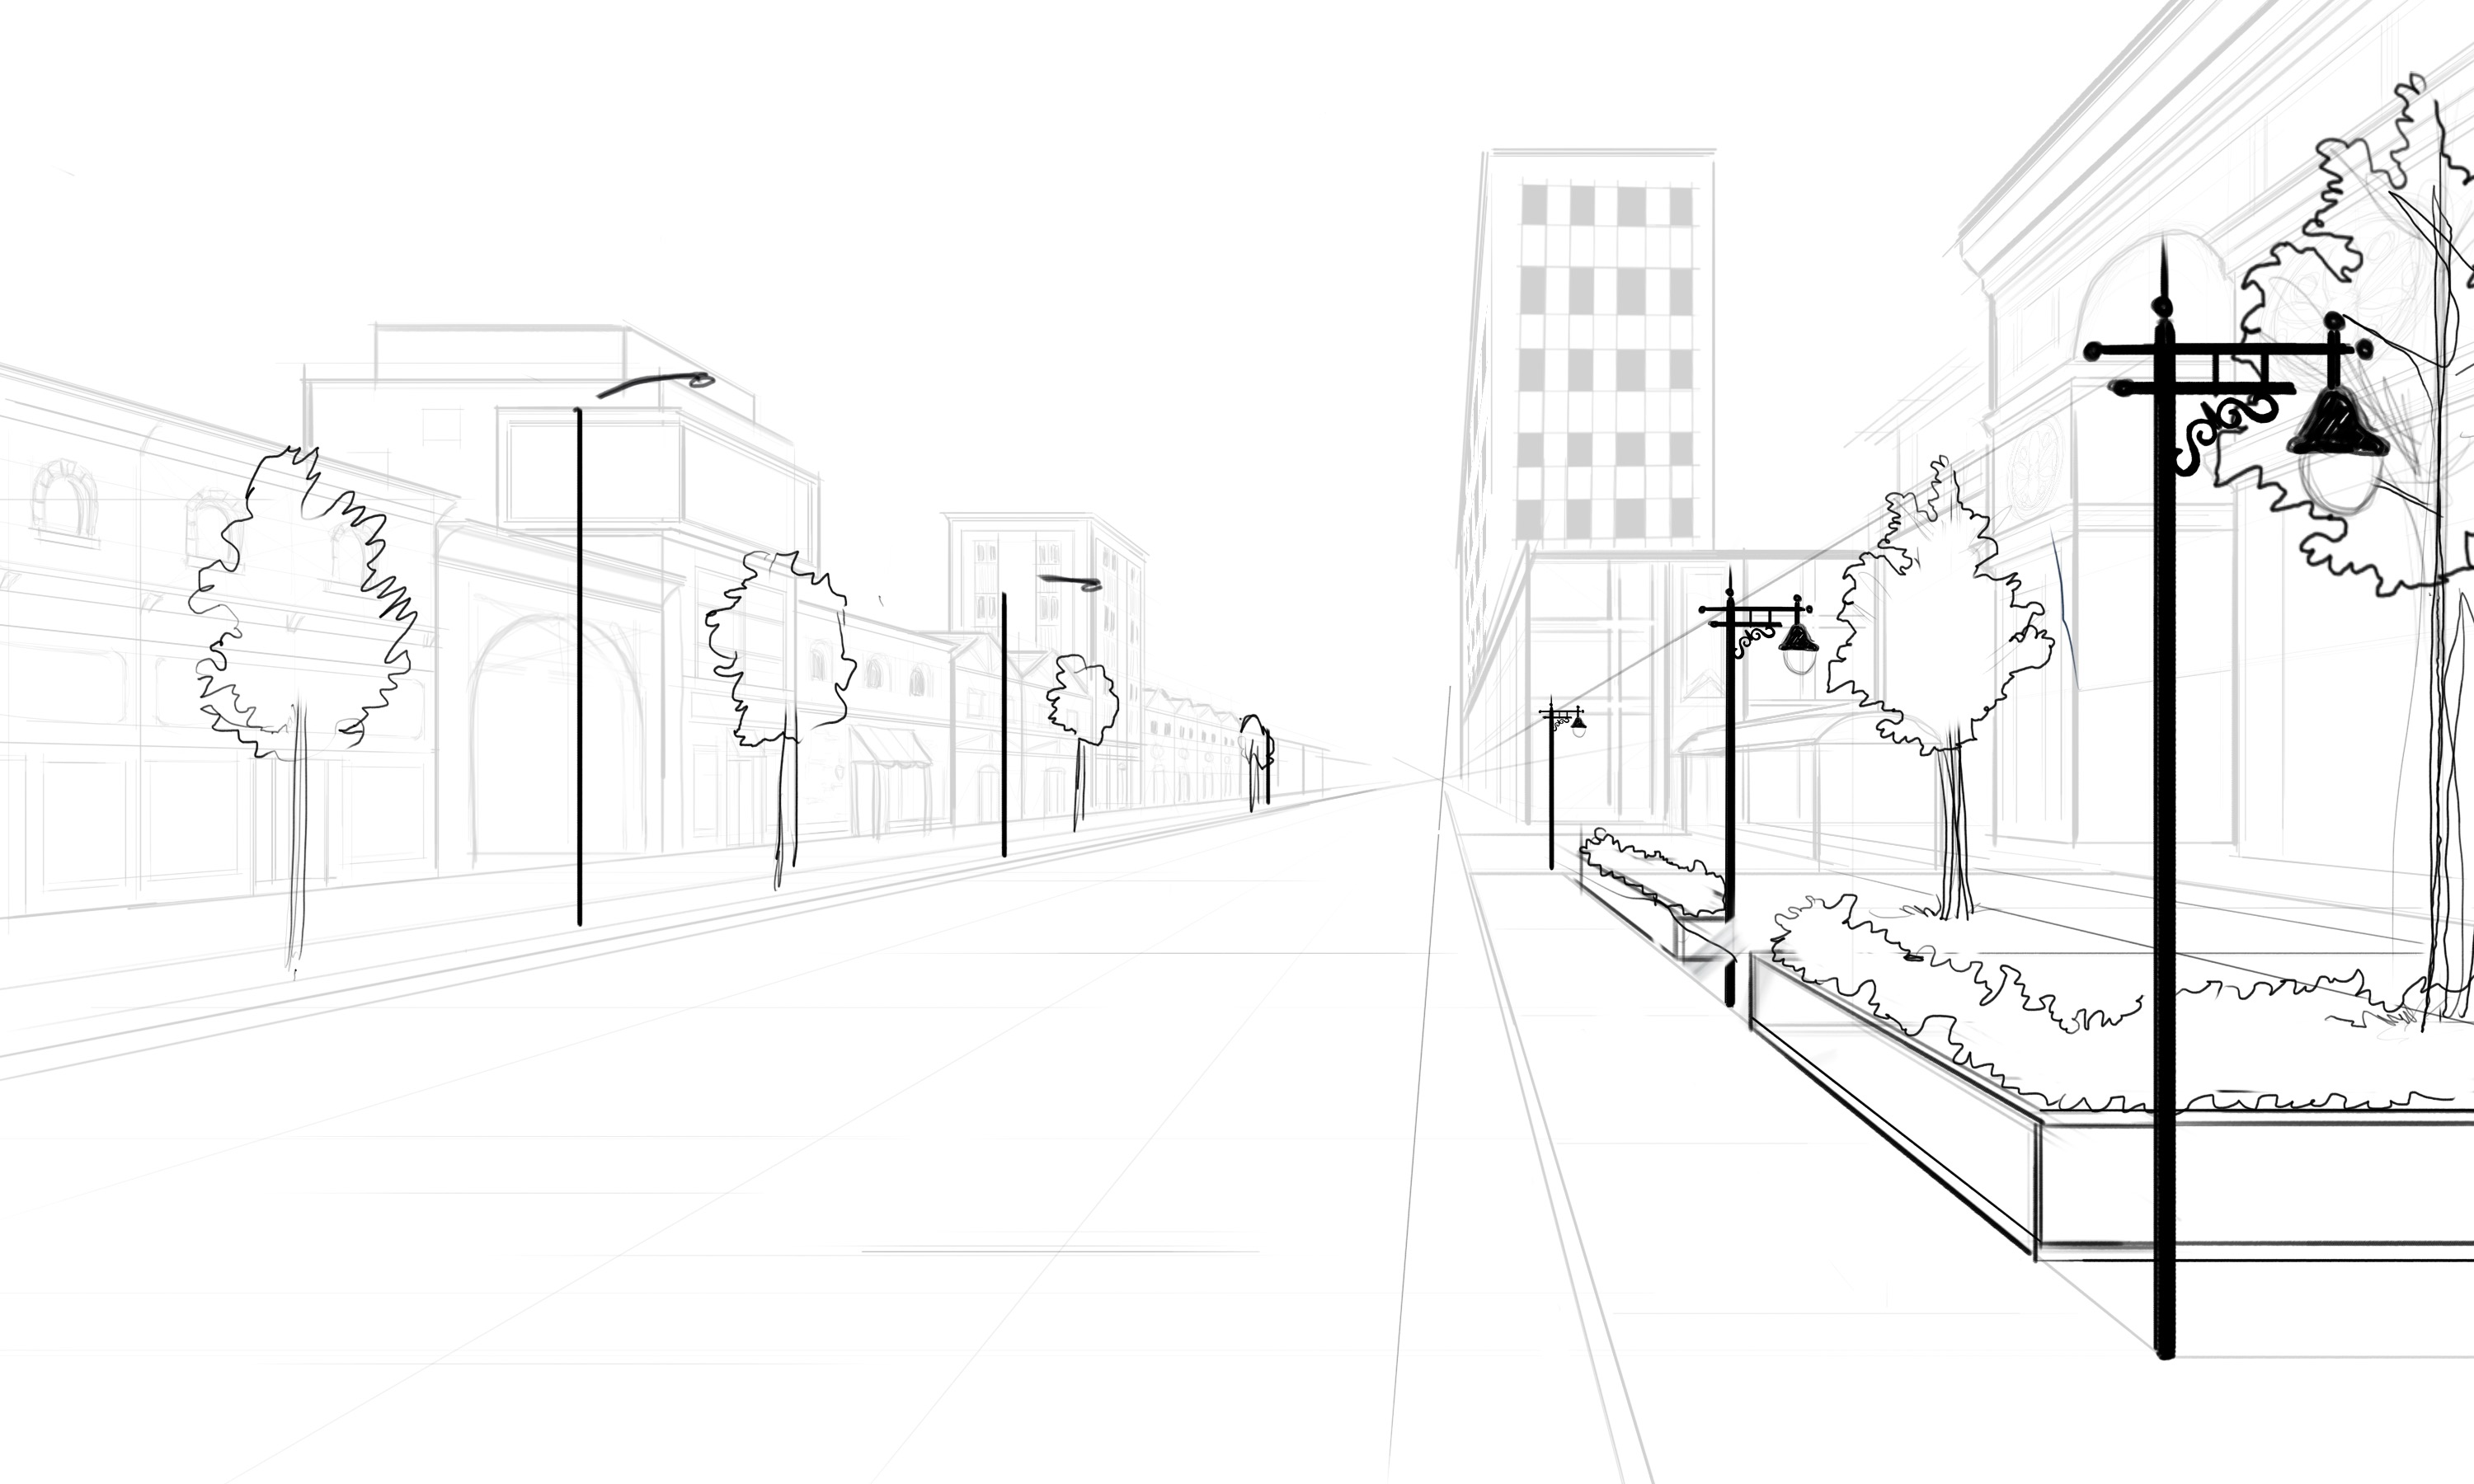 Road Perspective Drawing At Getdrawings Com Free For